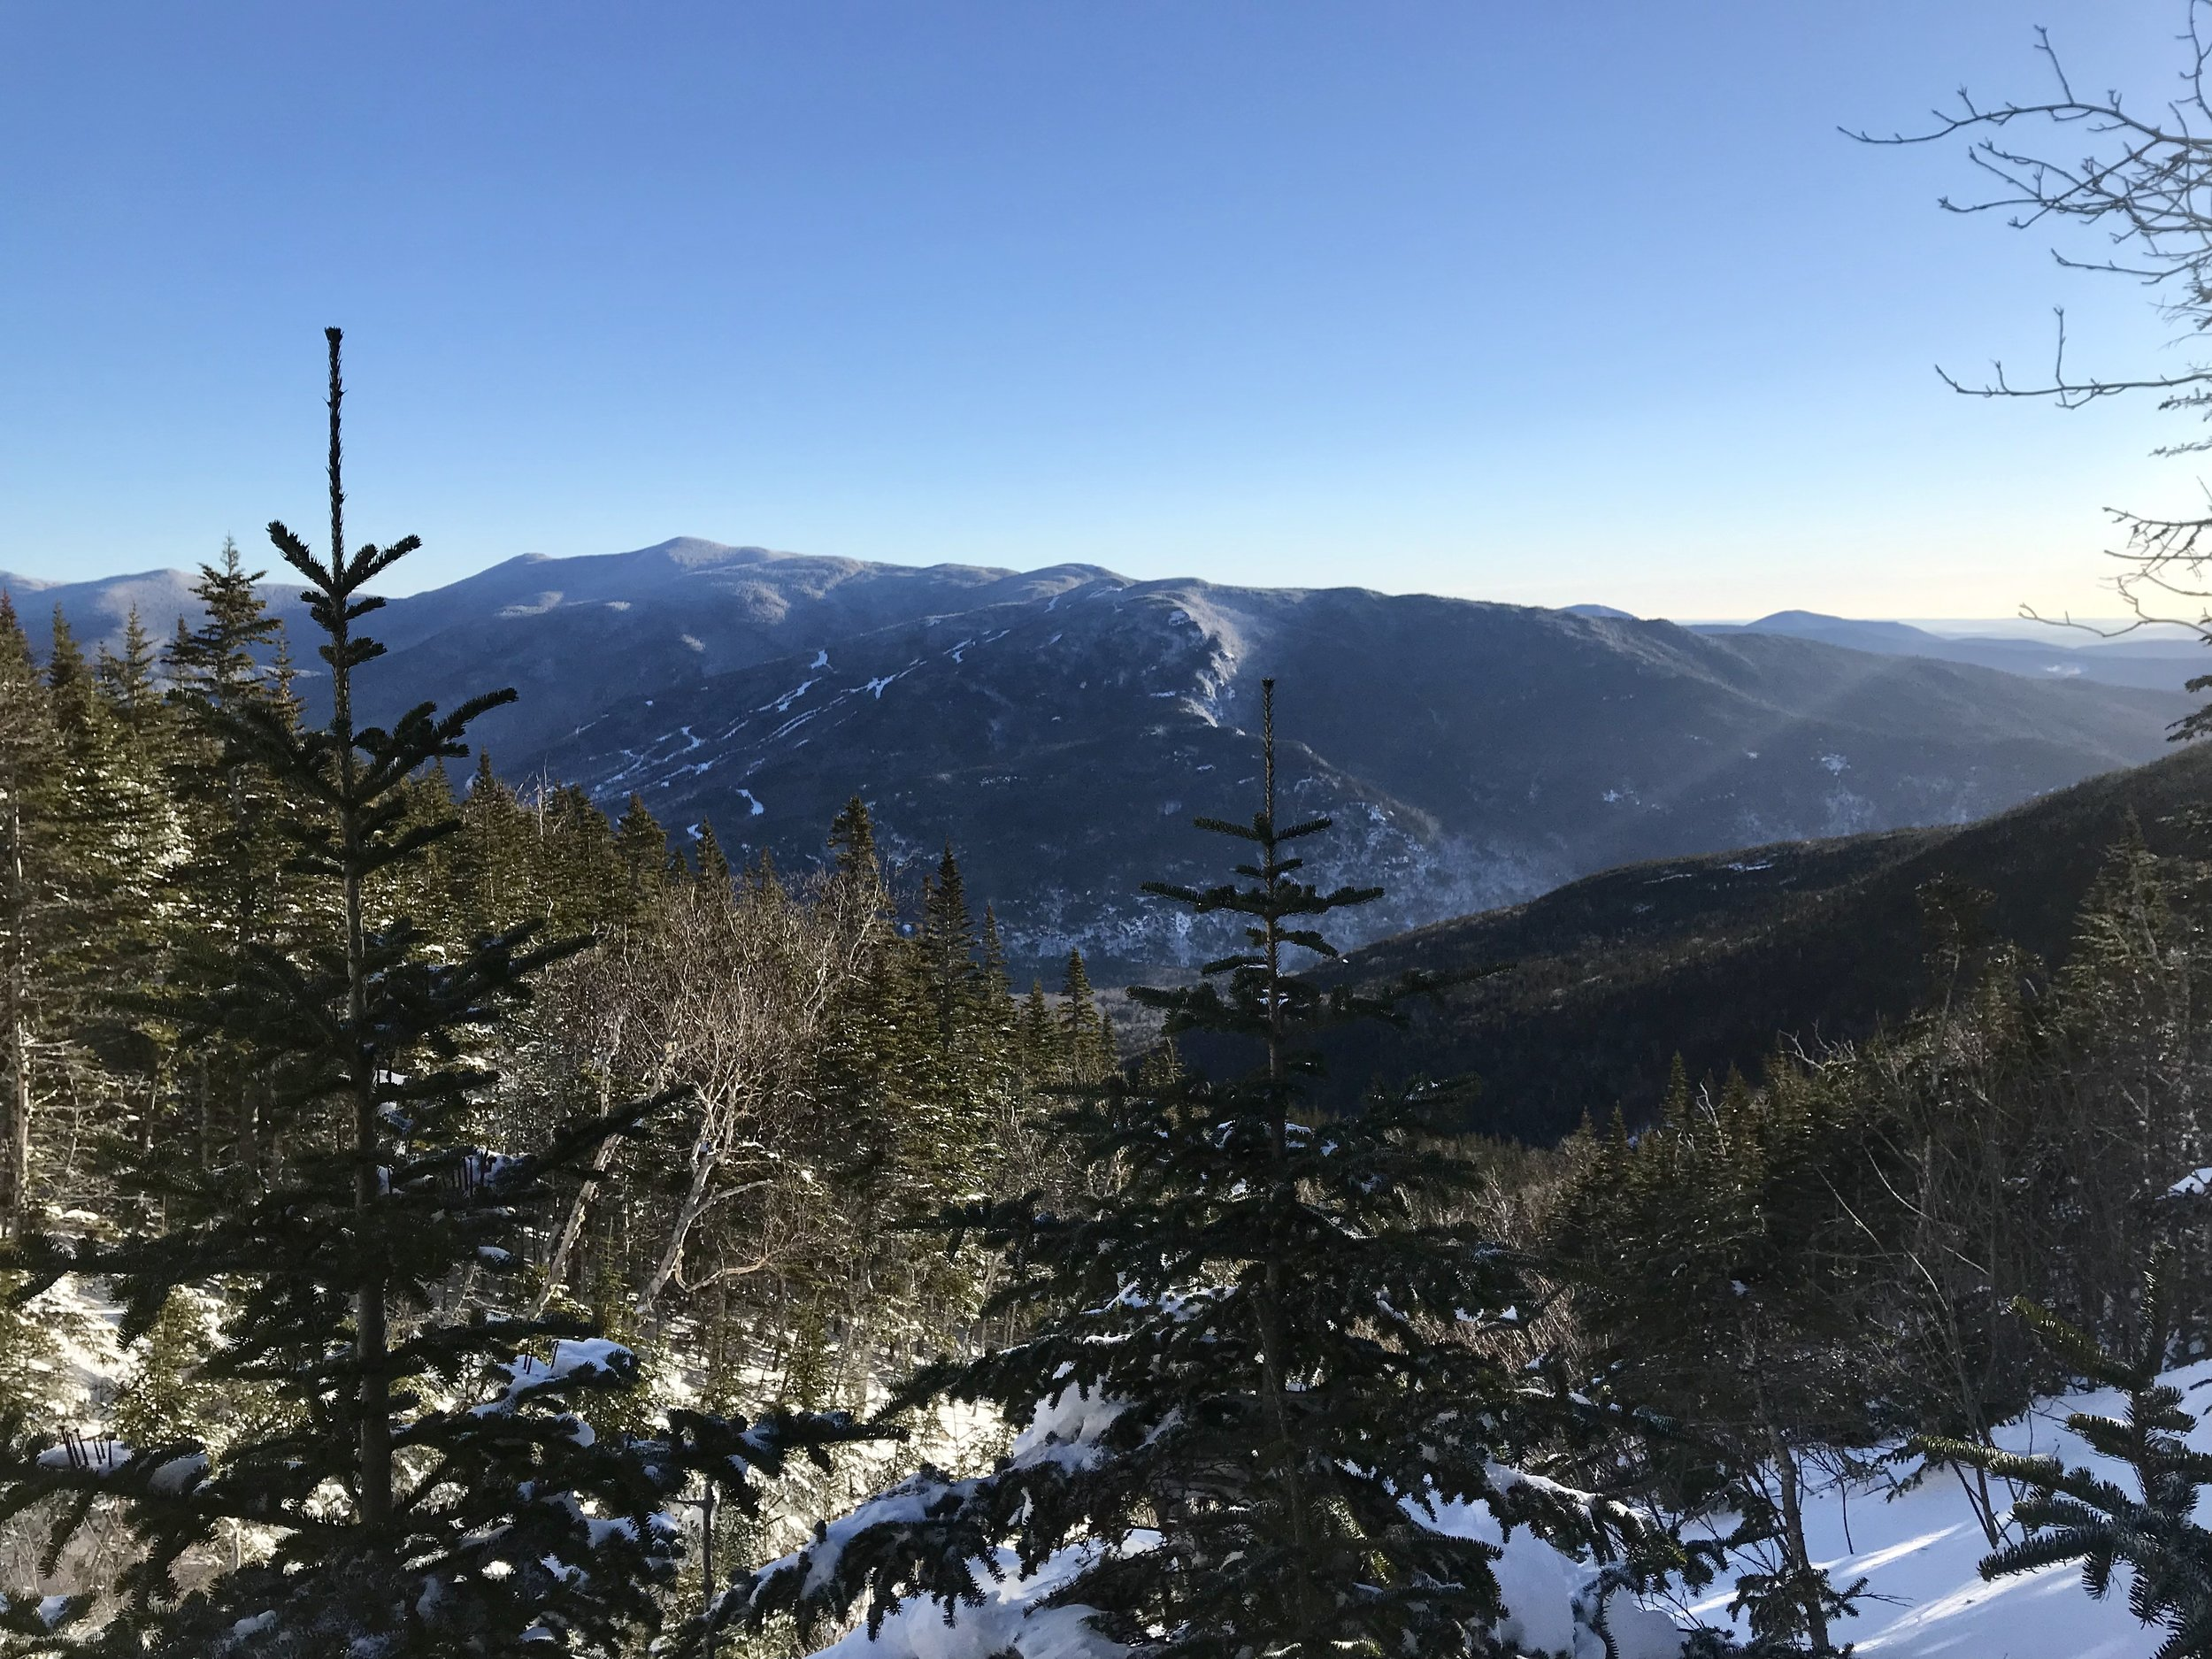 Crystal clear views of Wildcat Mountain